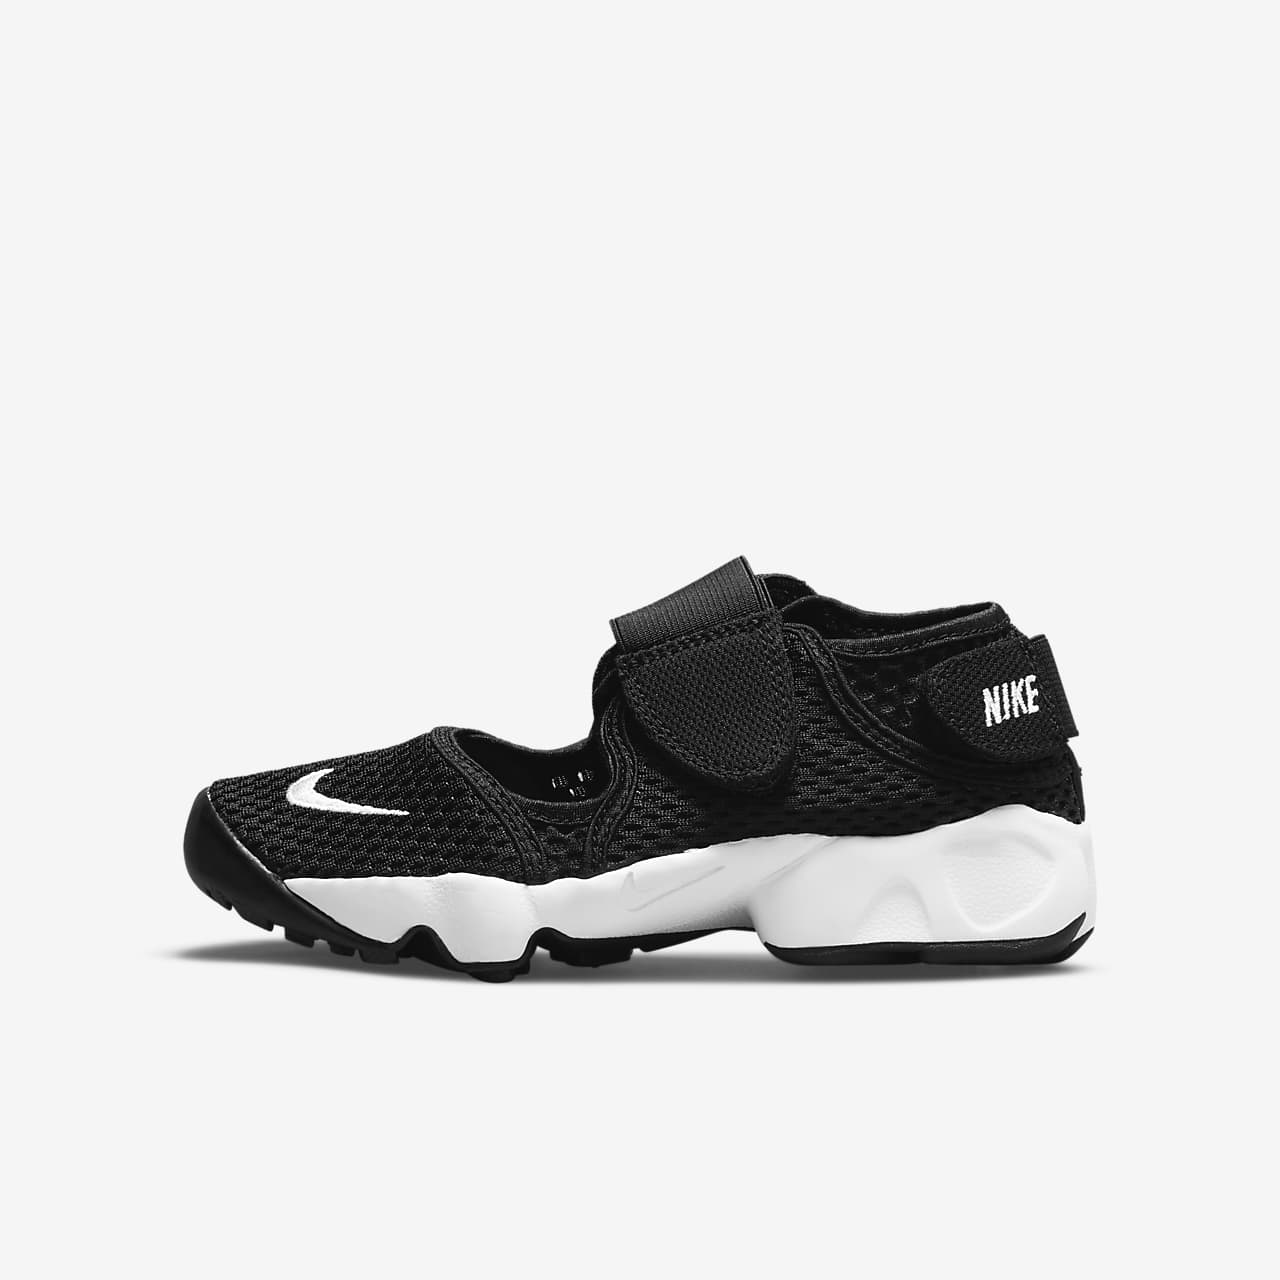 Nike Air Rift (10.5c-3y) Kids' Shoe